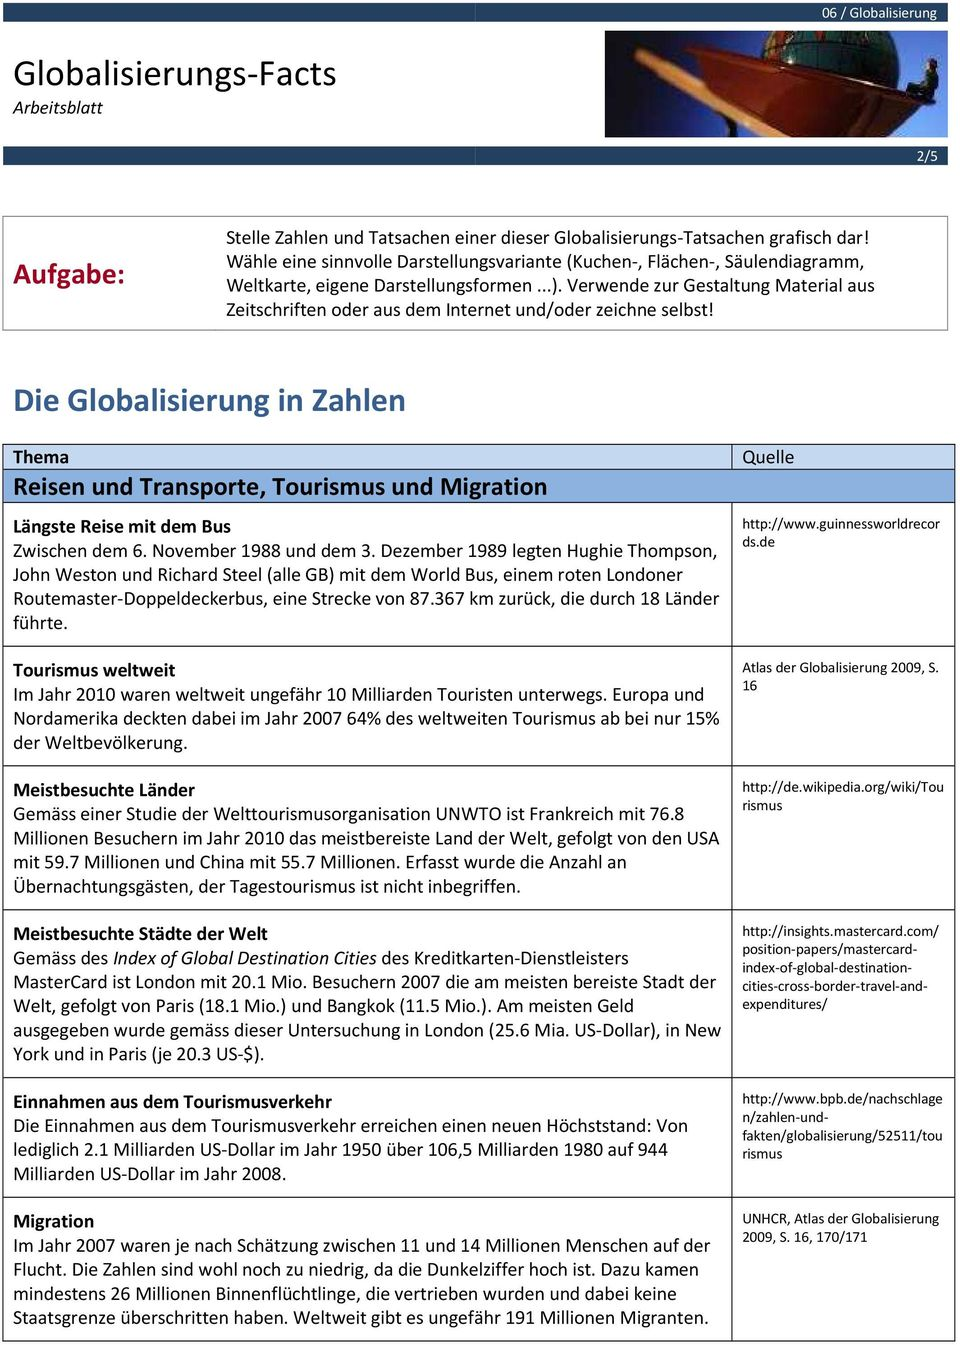 Globalisierungs-Facts Arbeitsblatt - PDF